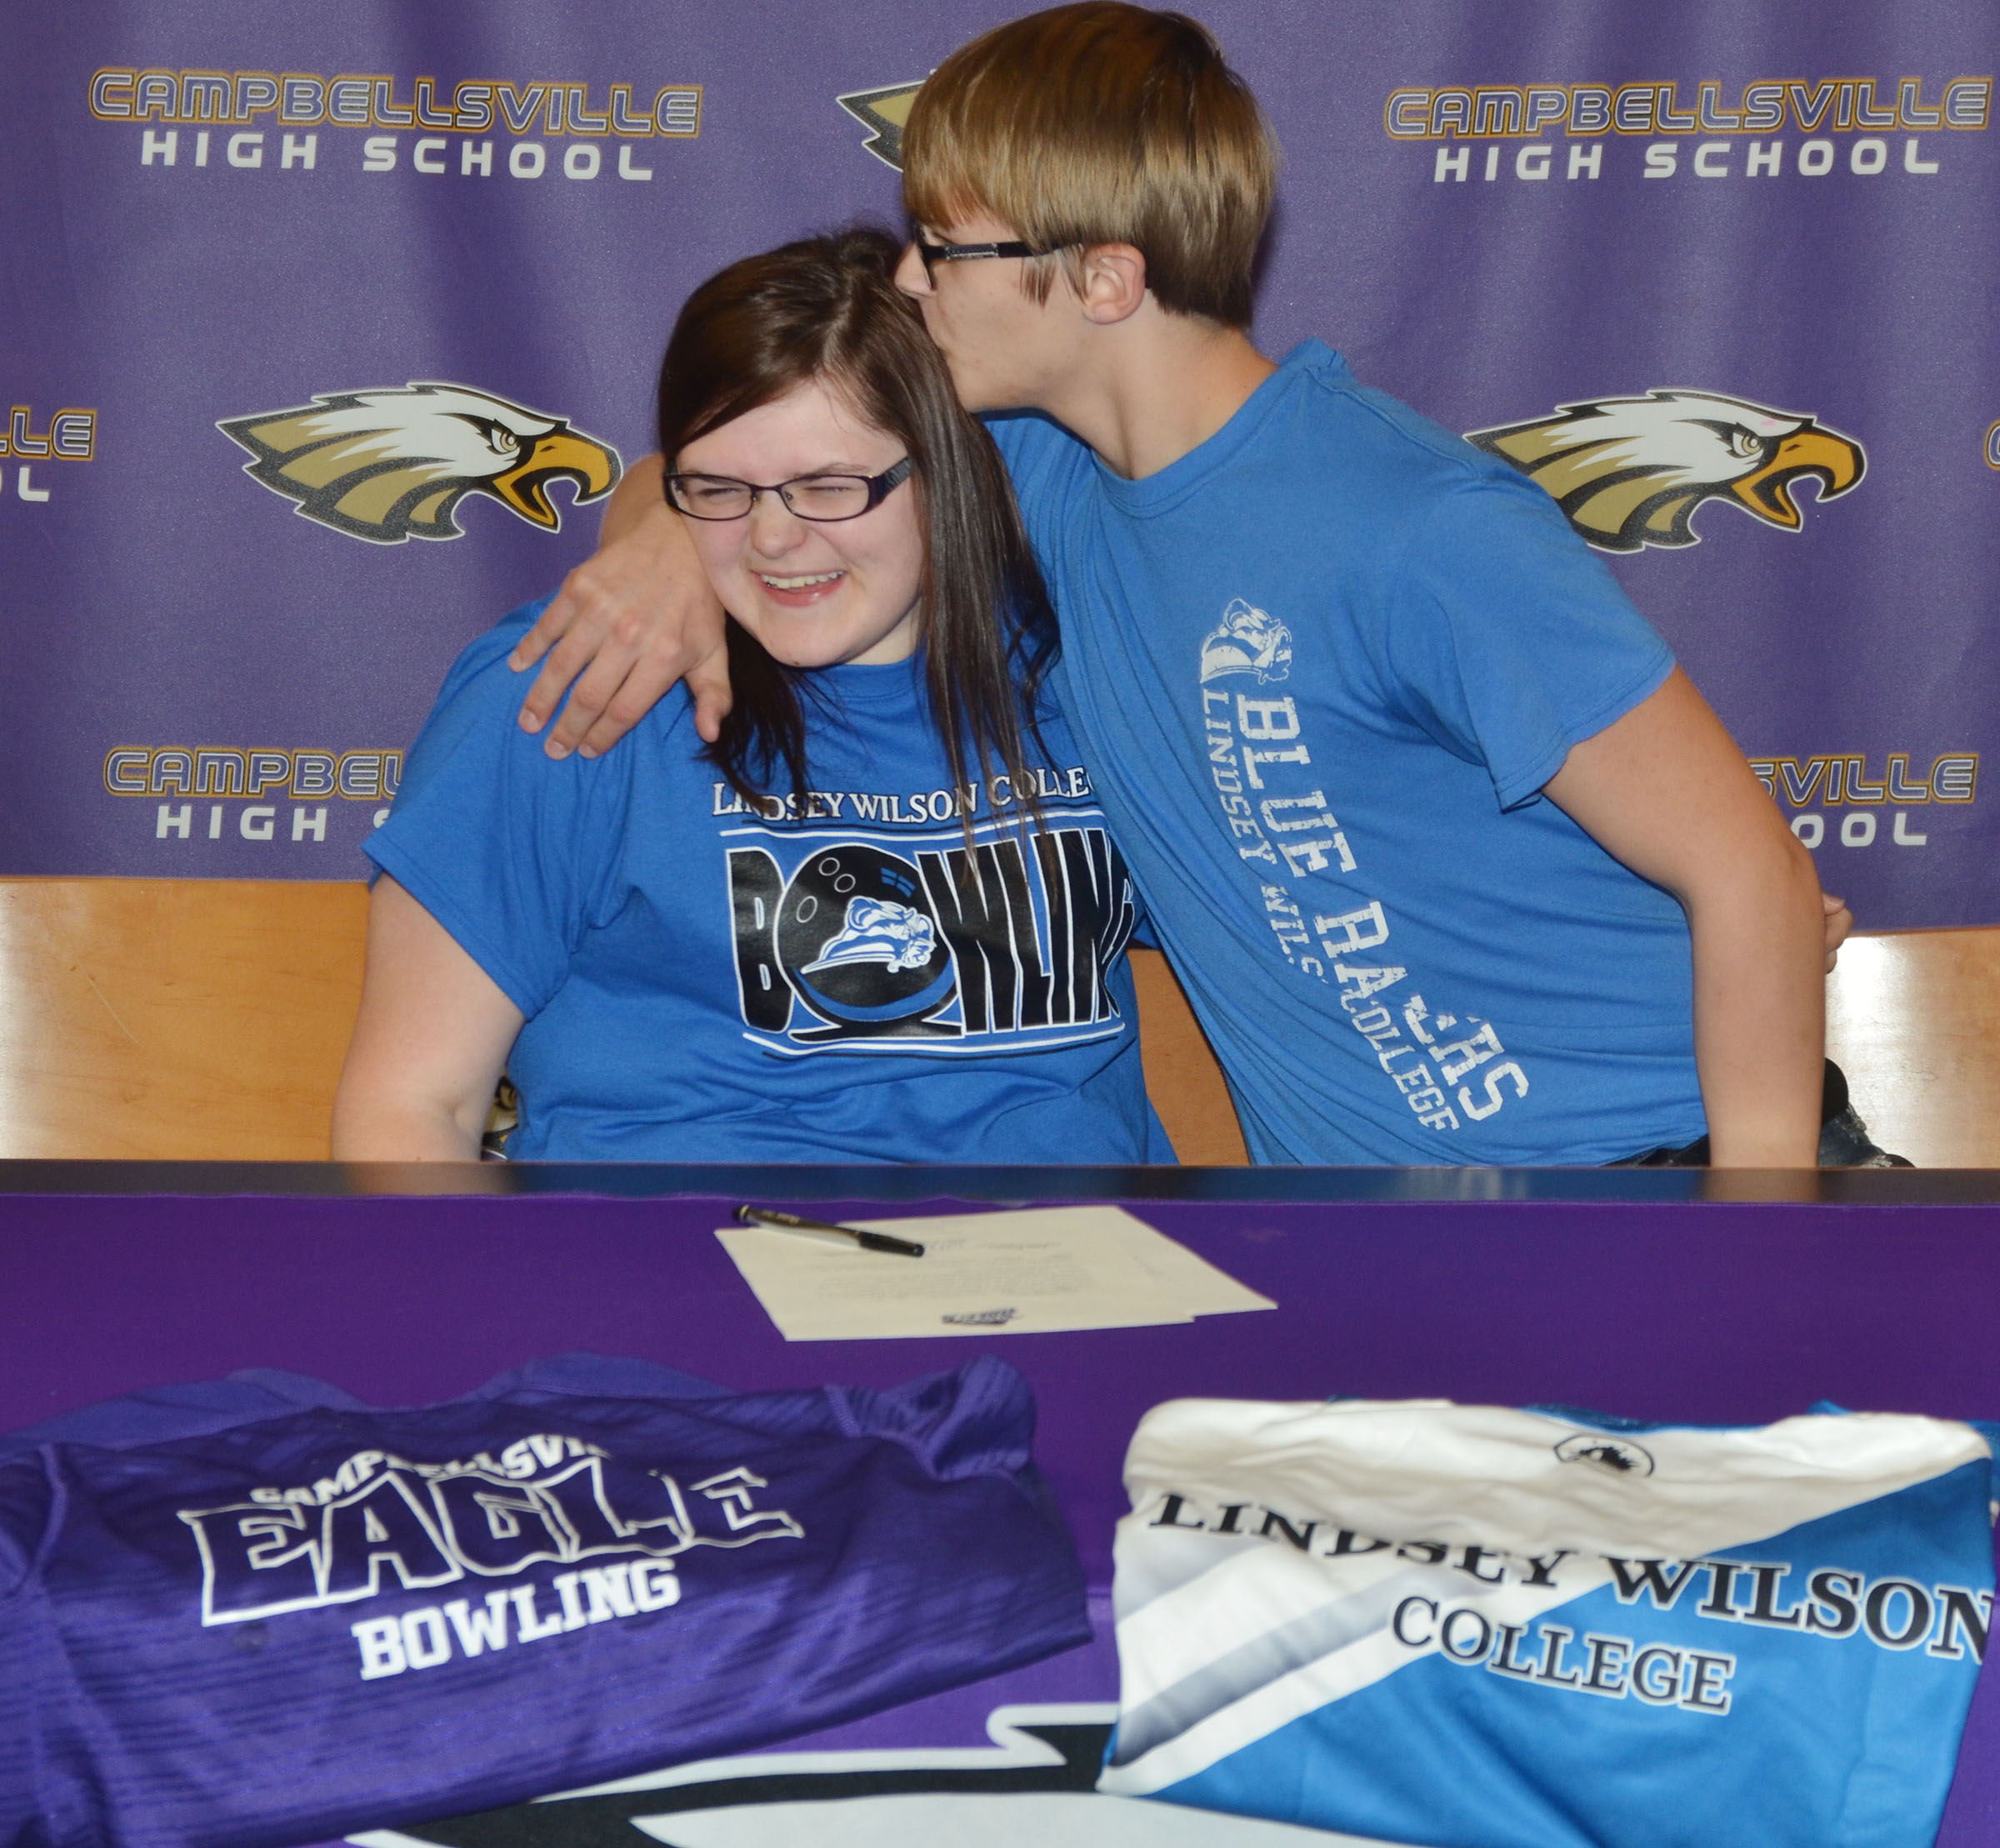 Campbellsville High School senior Vera Brown will continue her academic and bowling career at Lindsey Wilson College in the fall. She officially signed her letter of intent in a special ceremony on Wednesday, Feb. 1. Above, she receives a hug and kiss from her brother, CHS freshman Dalton Brown.